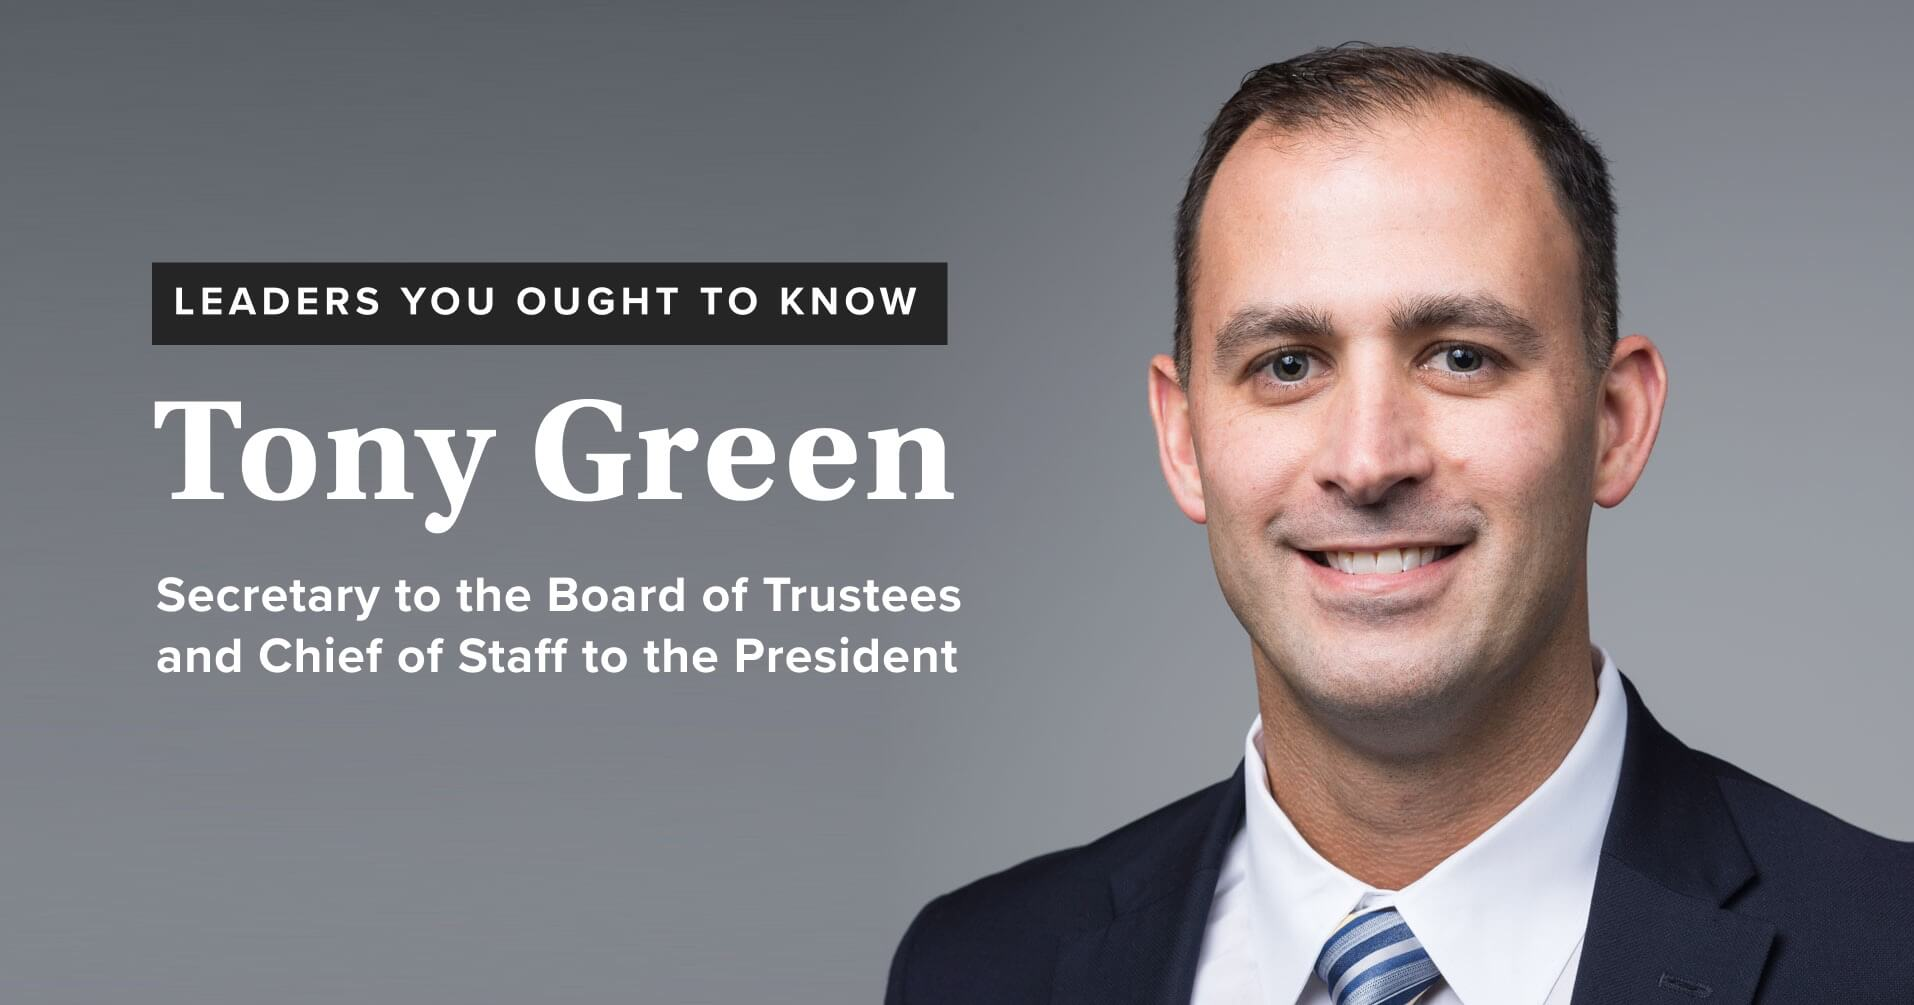 Leaders you ought to know: Tony Green